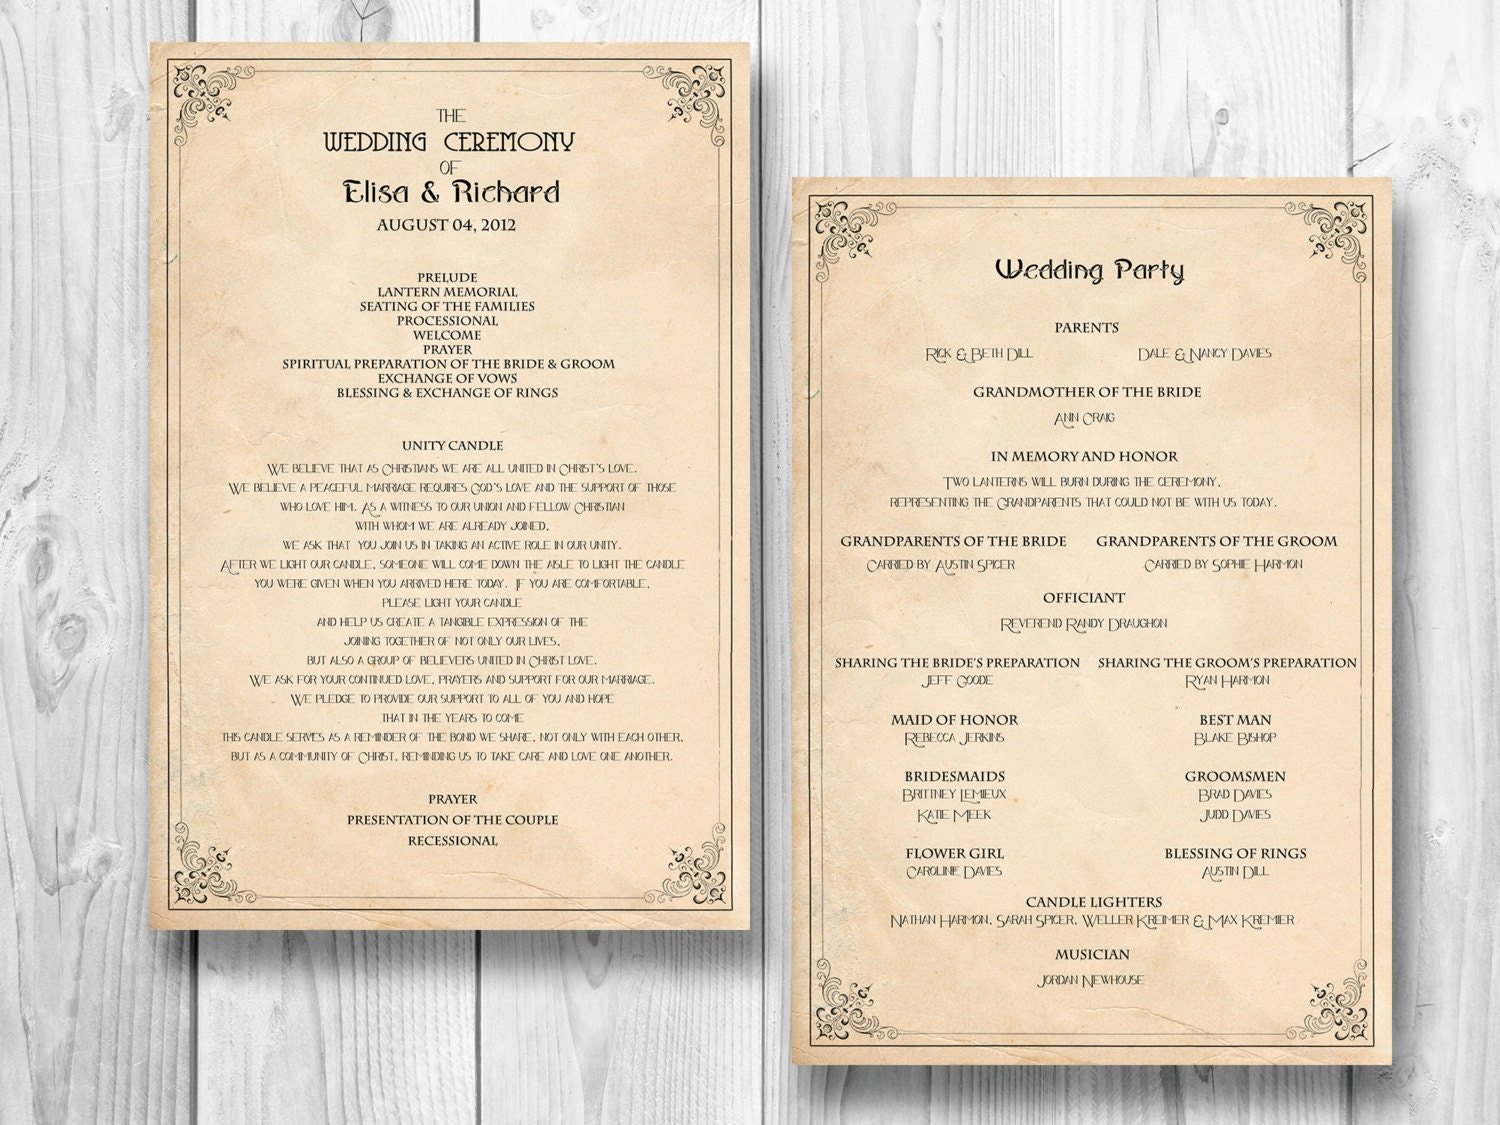 Wedding Reception Order Of Events Samples Wedding Cake To